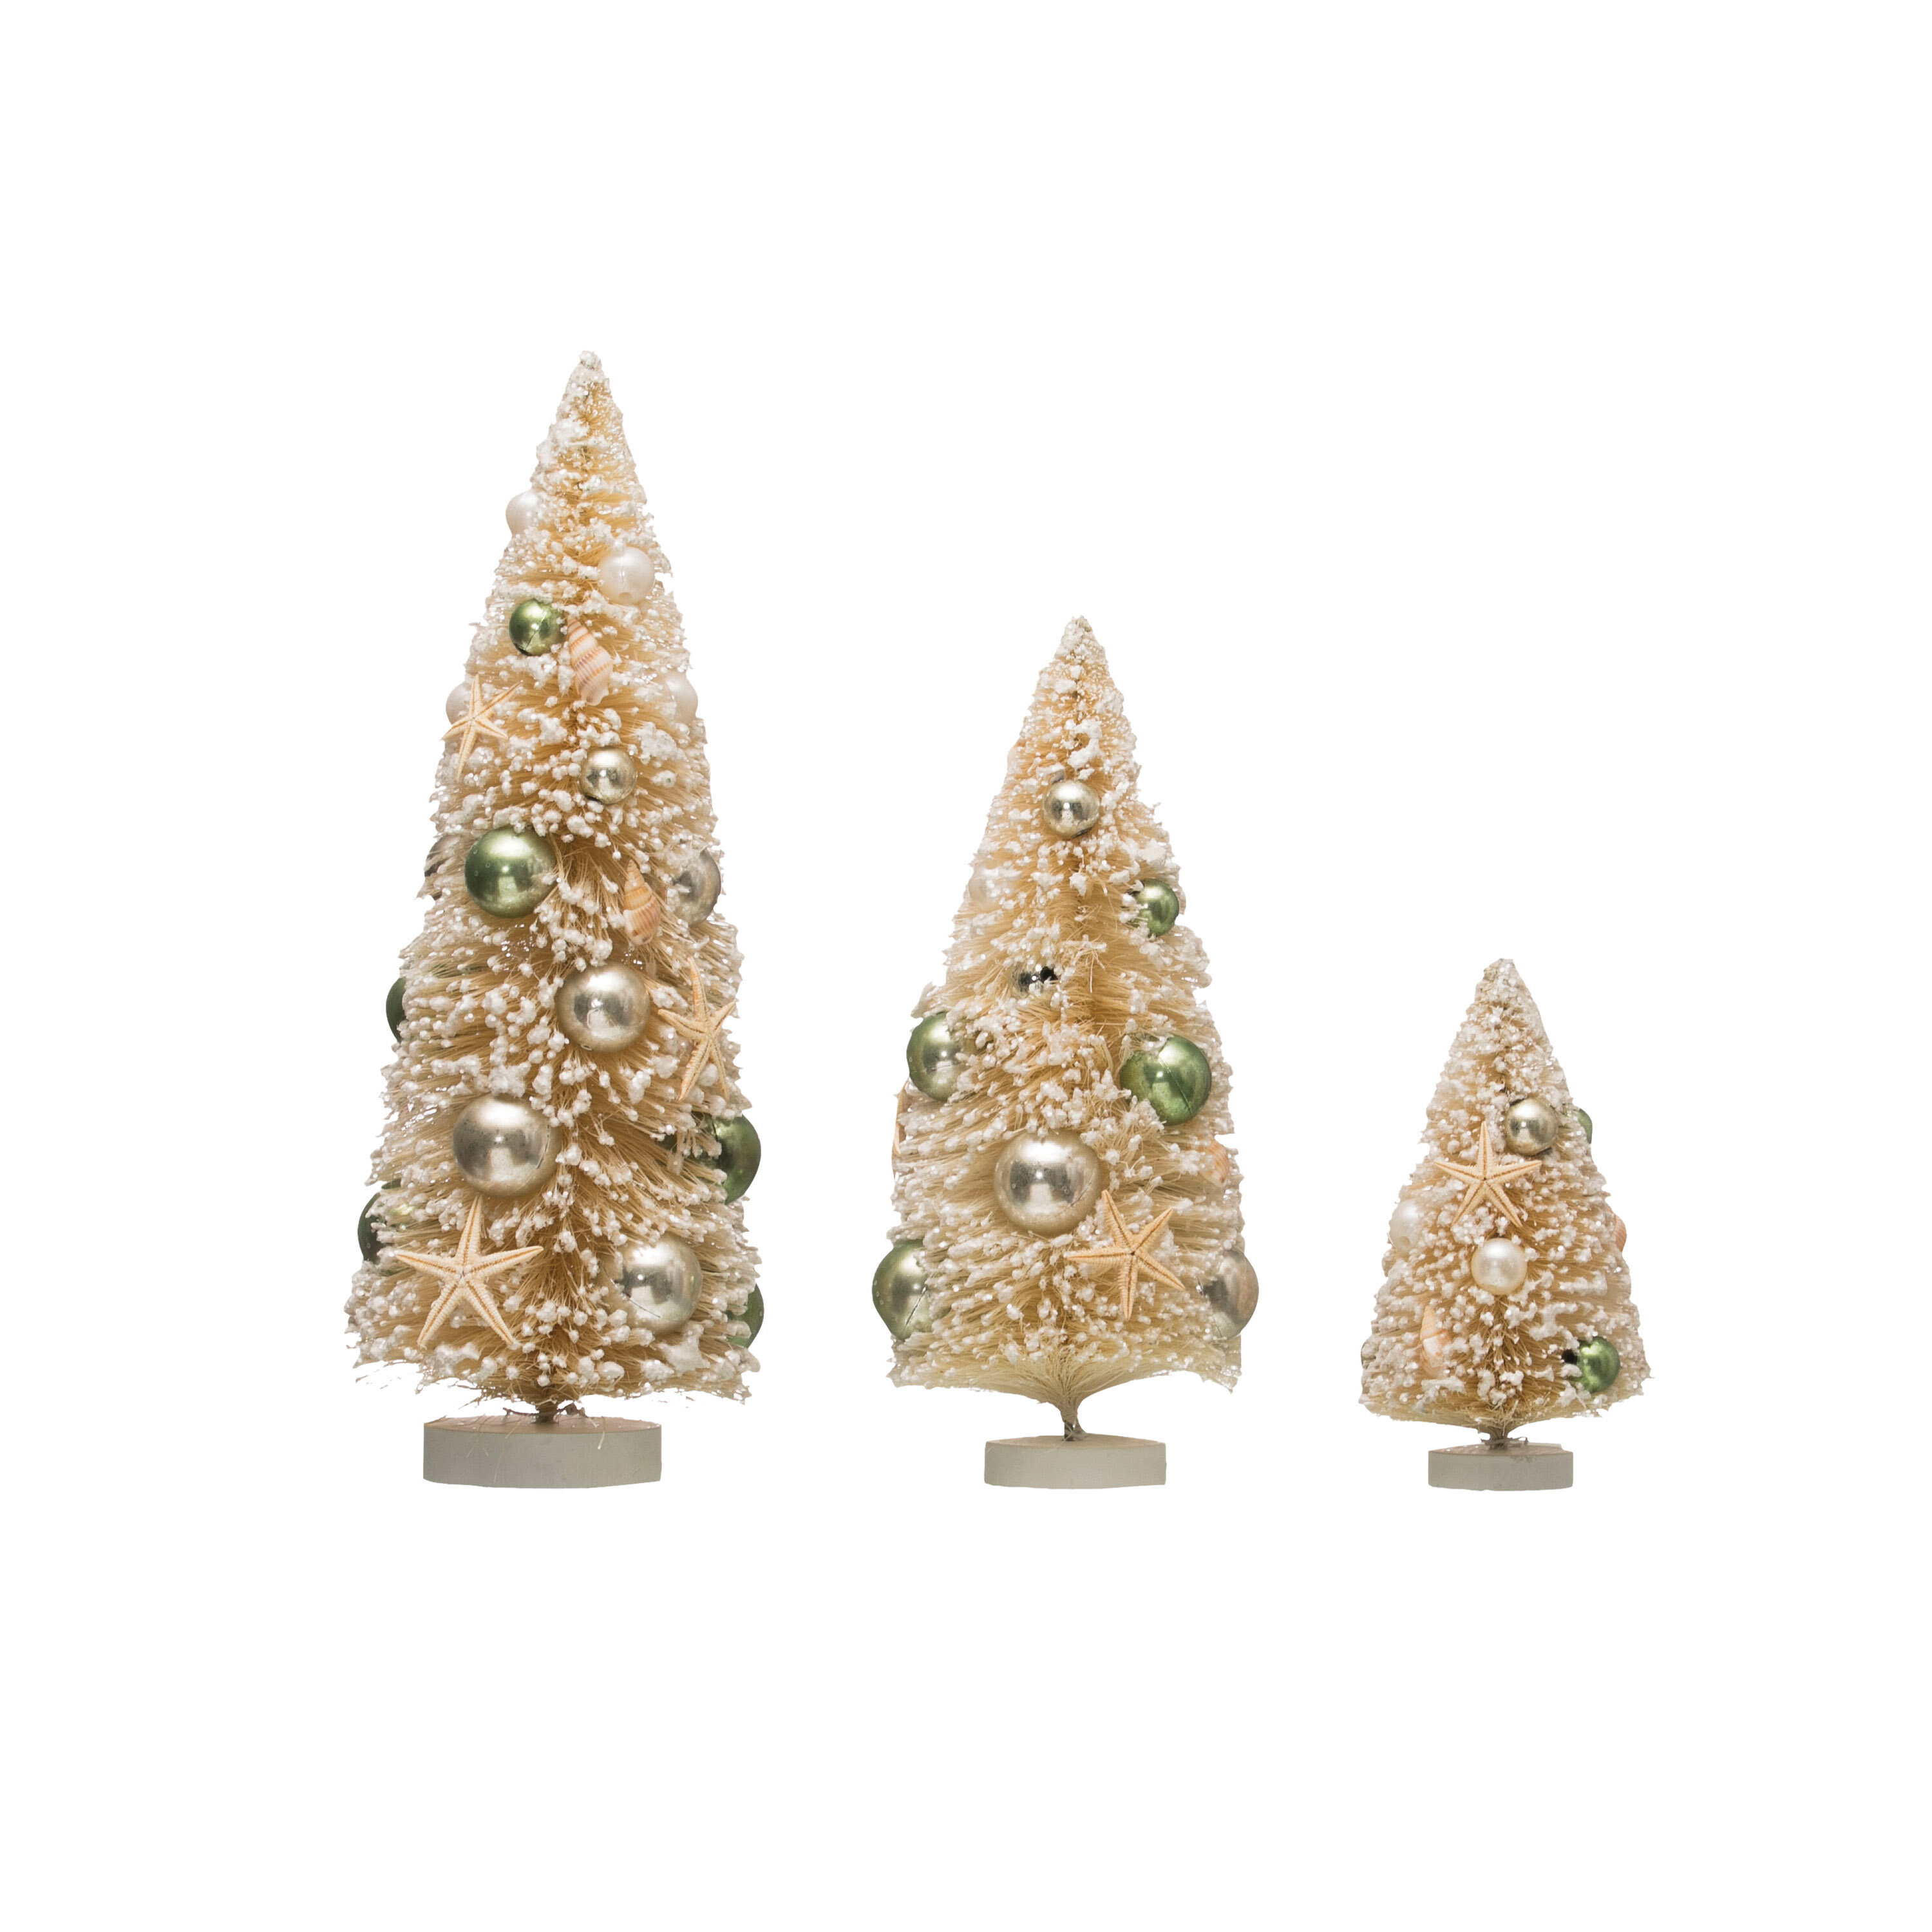 The Holiday Aisle 3 Piece Bottle Brush Trees With Shells And Ornaments On Wood Base Set Wayfair